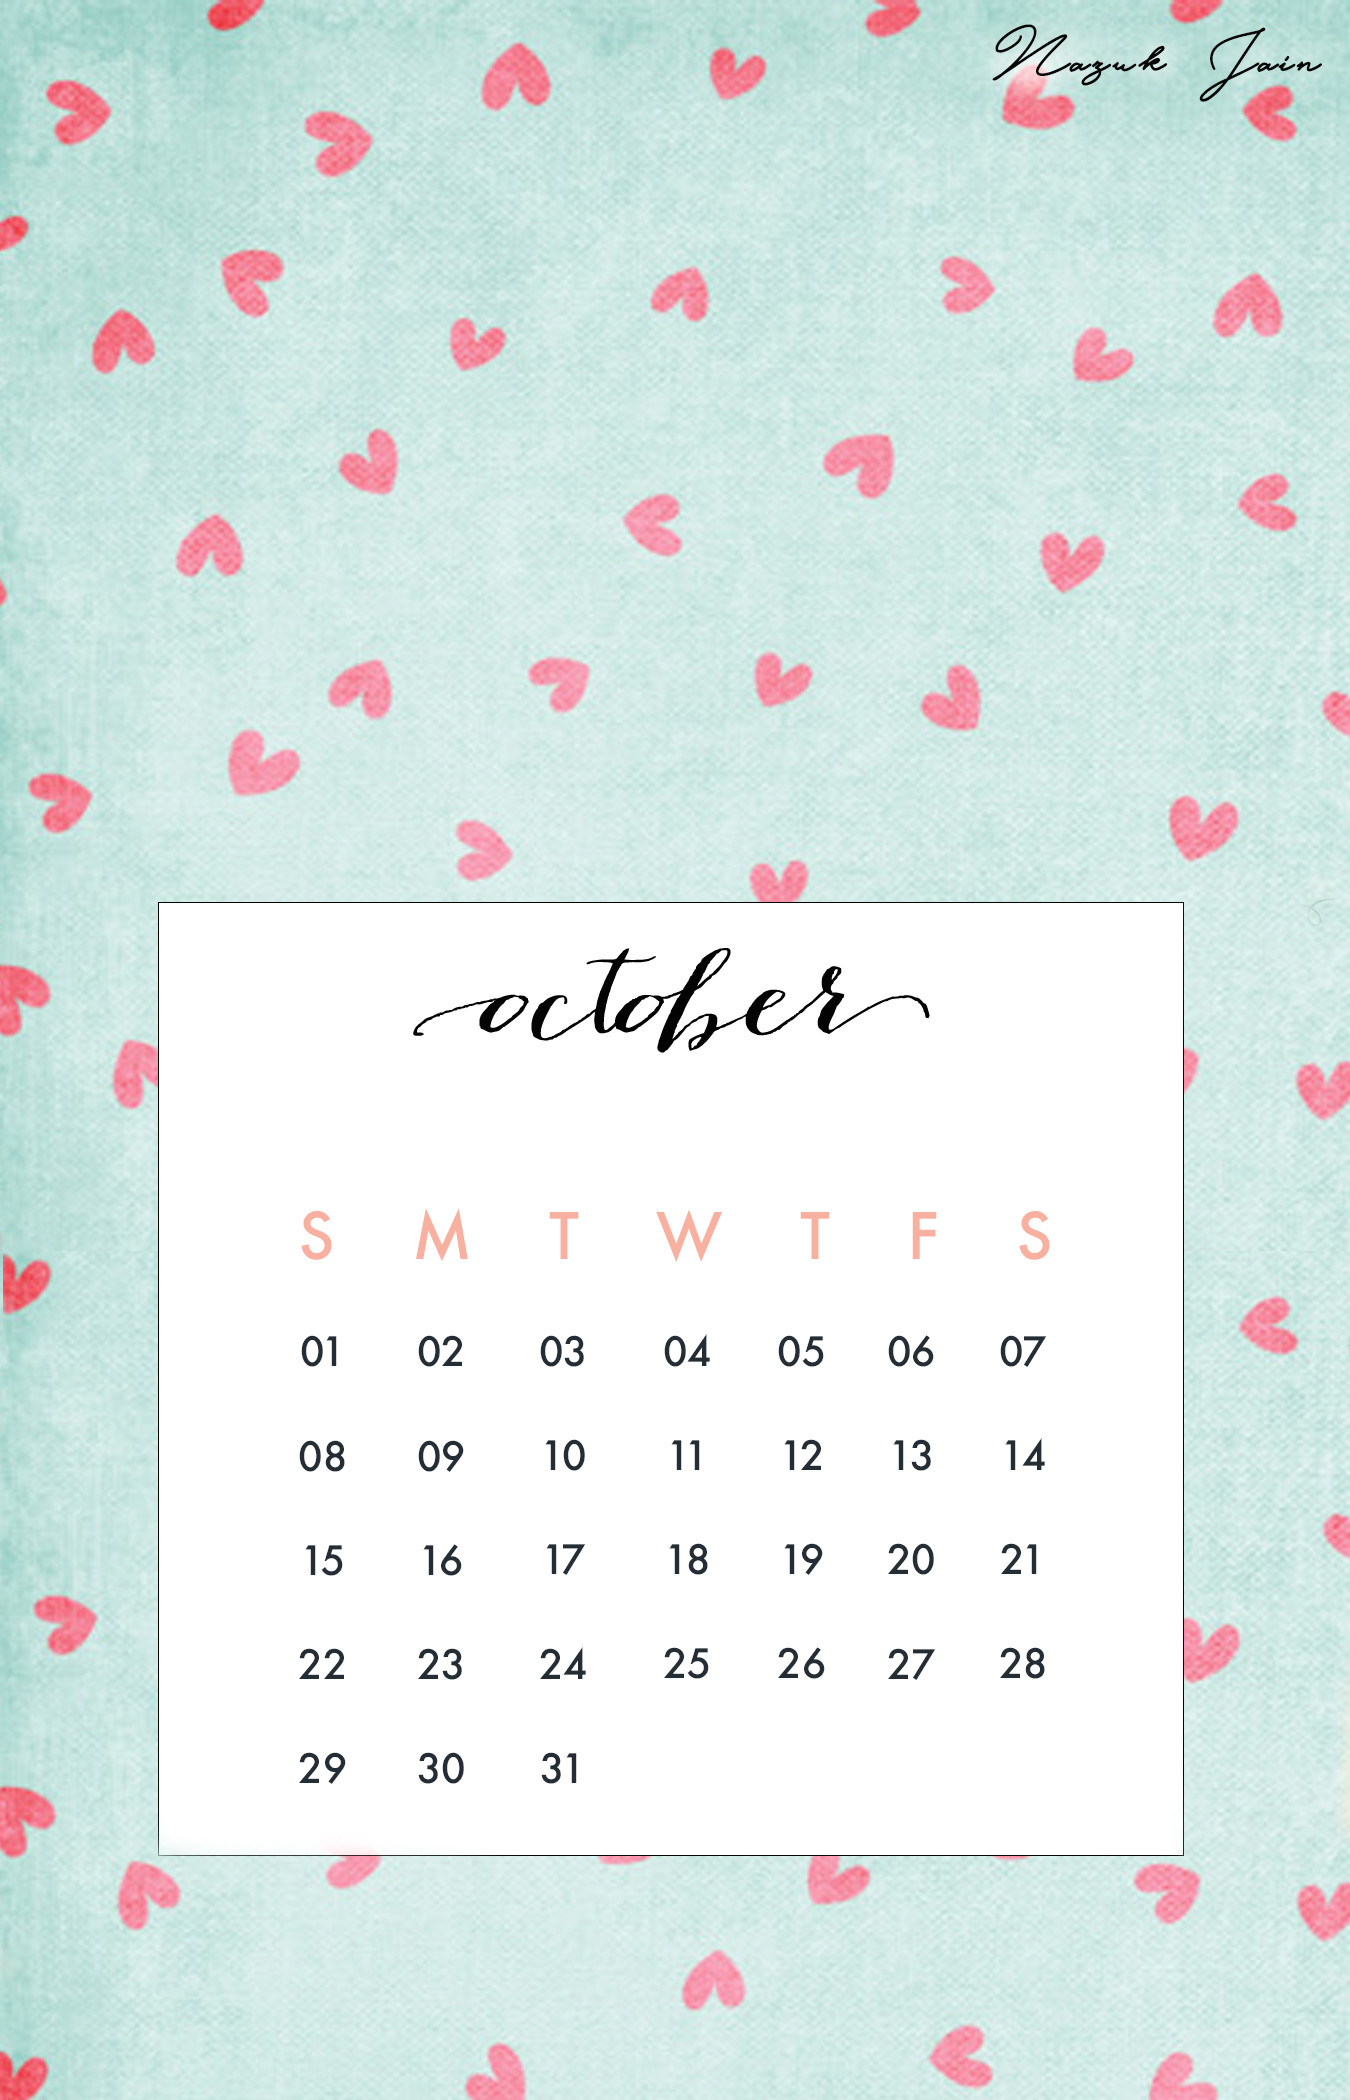 1350x2100 Wallpaper backgrounds · October - Free Calendar Printables 2017 by Nazuk  Jain